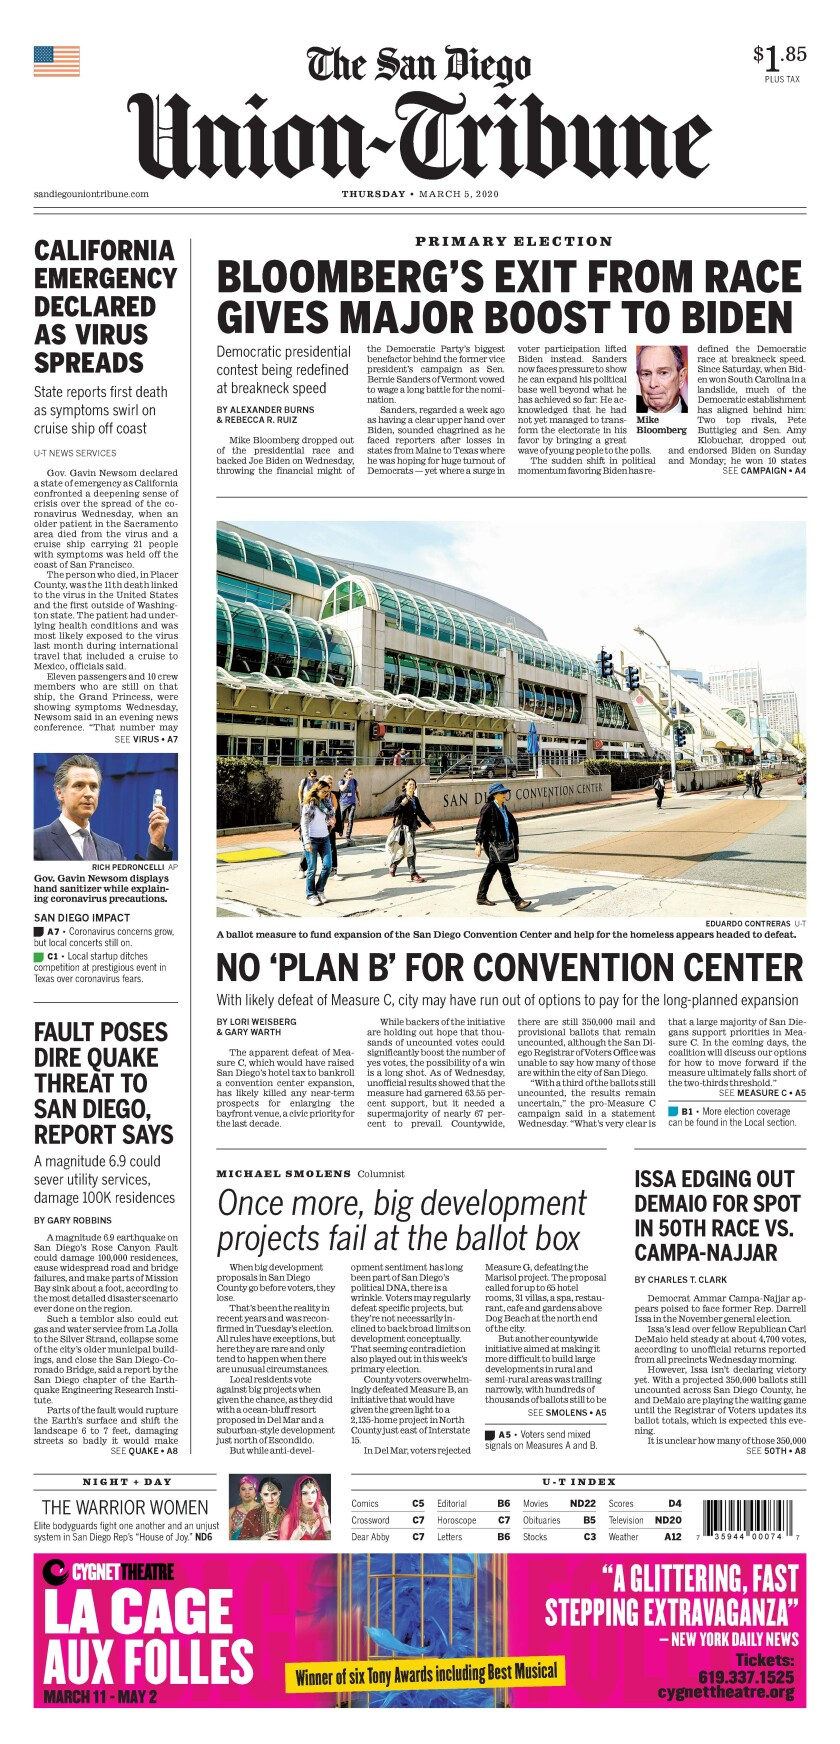 March 5, 2020 front page of The San Diego Union-Tribune